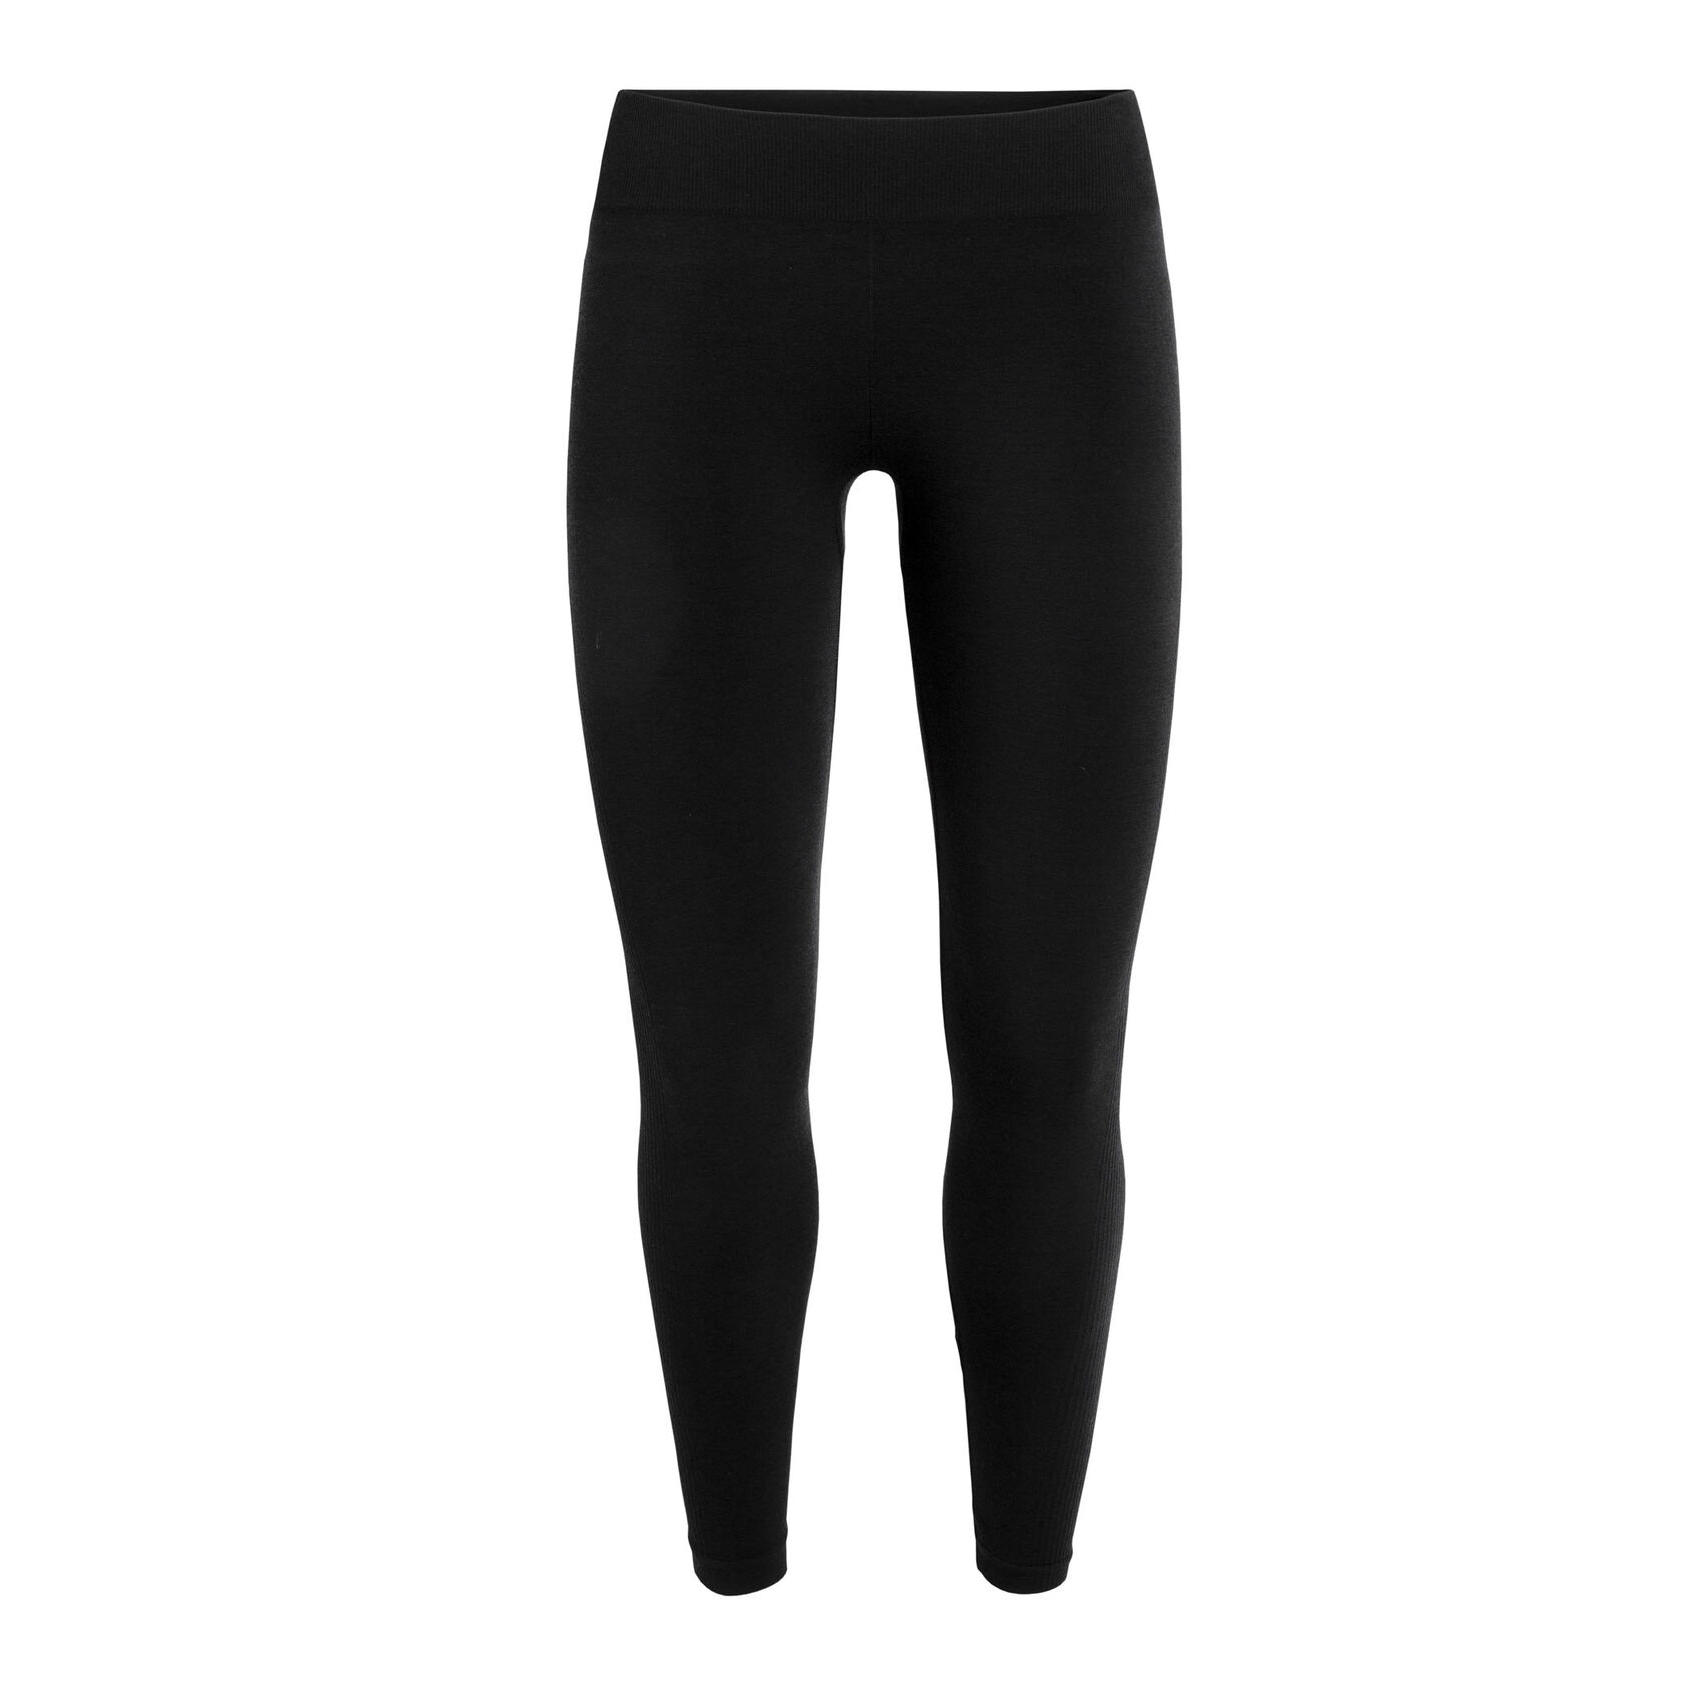 Motion Seamless Tights - Women's